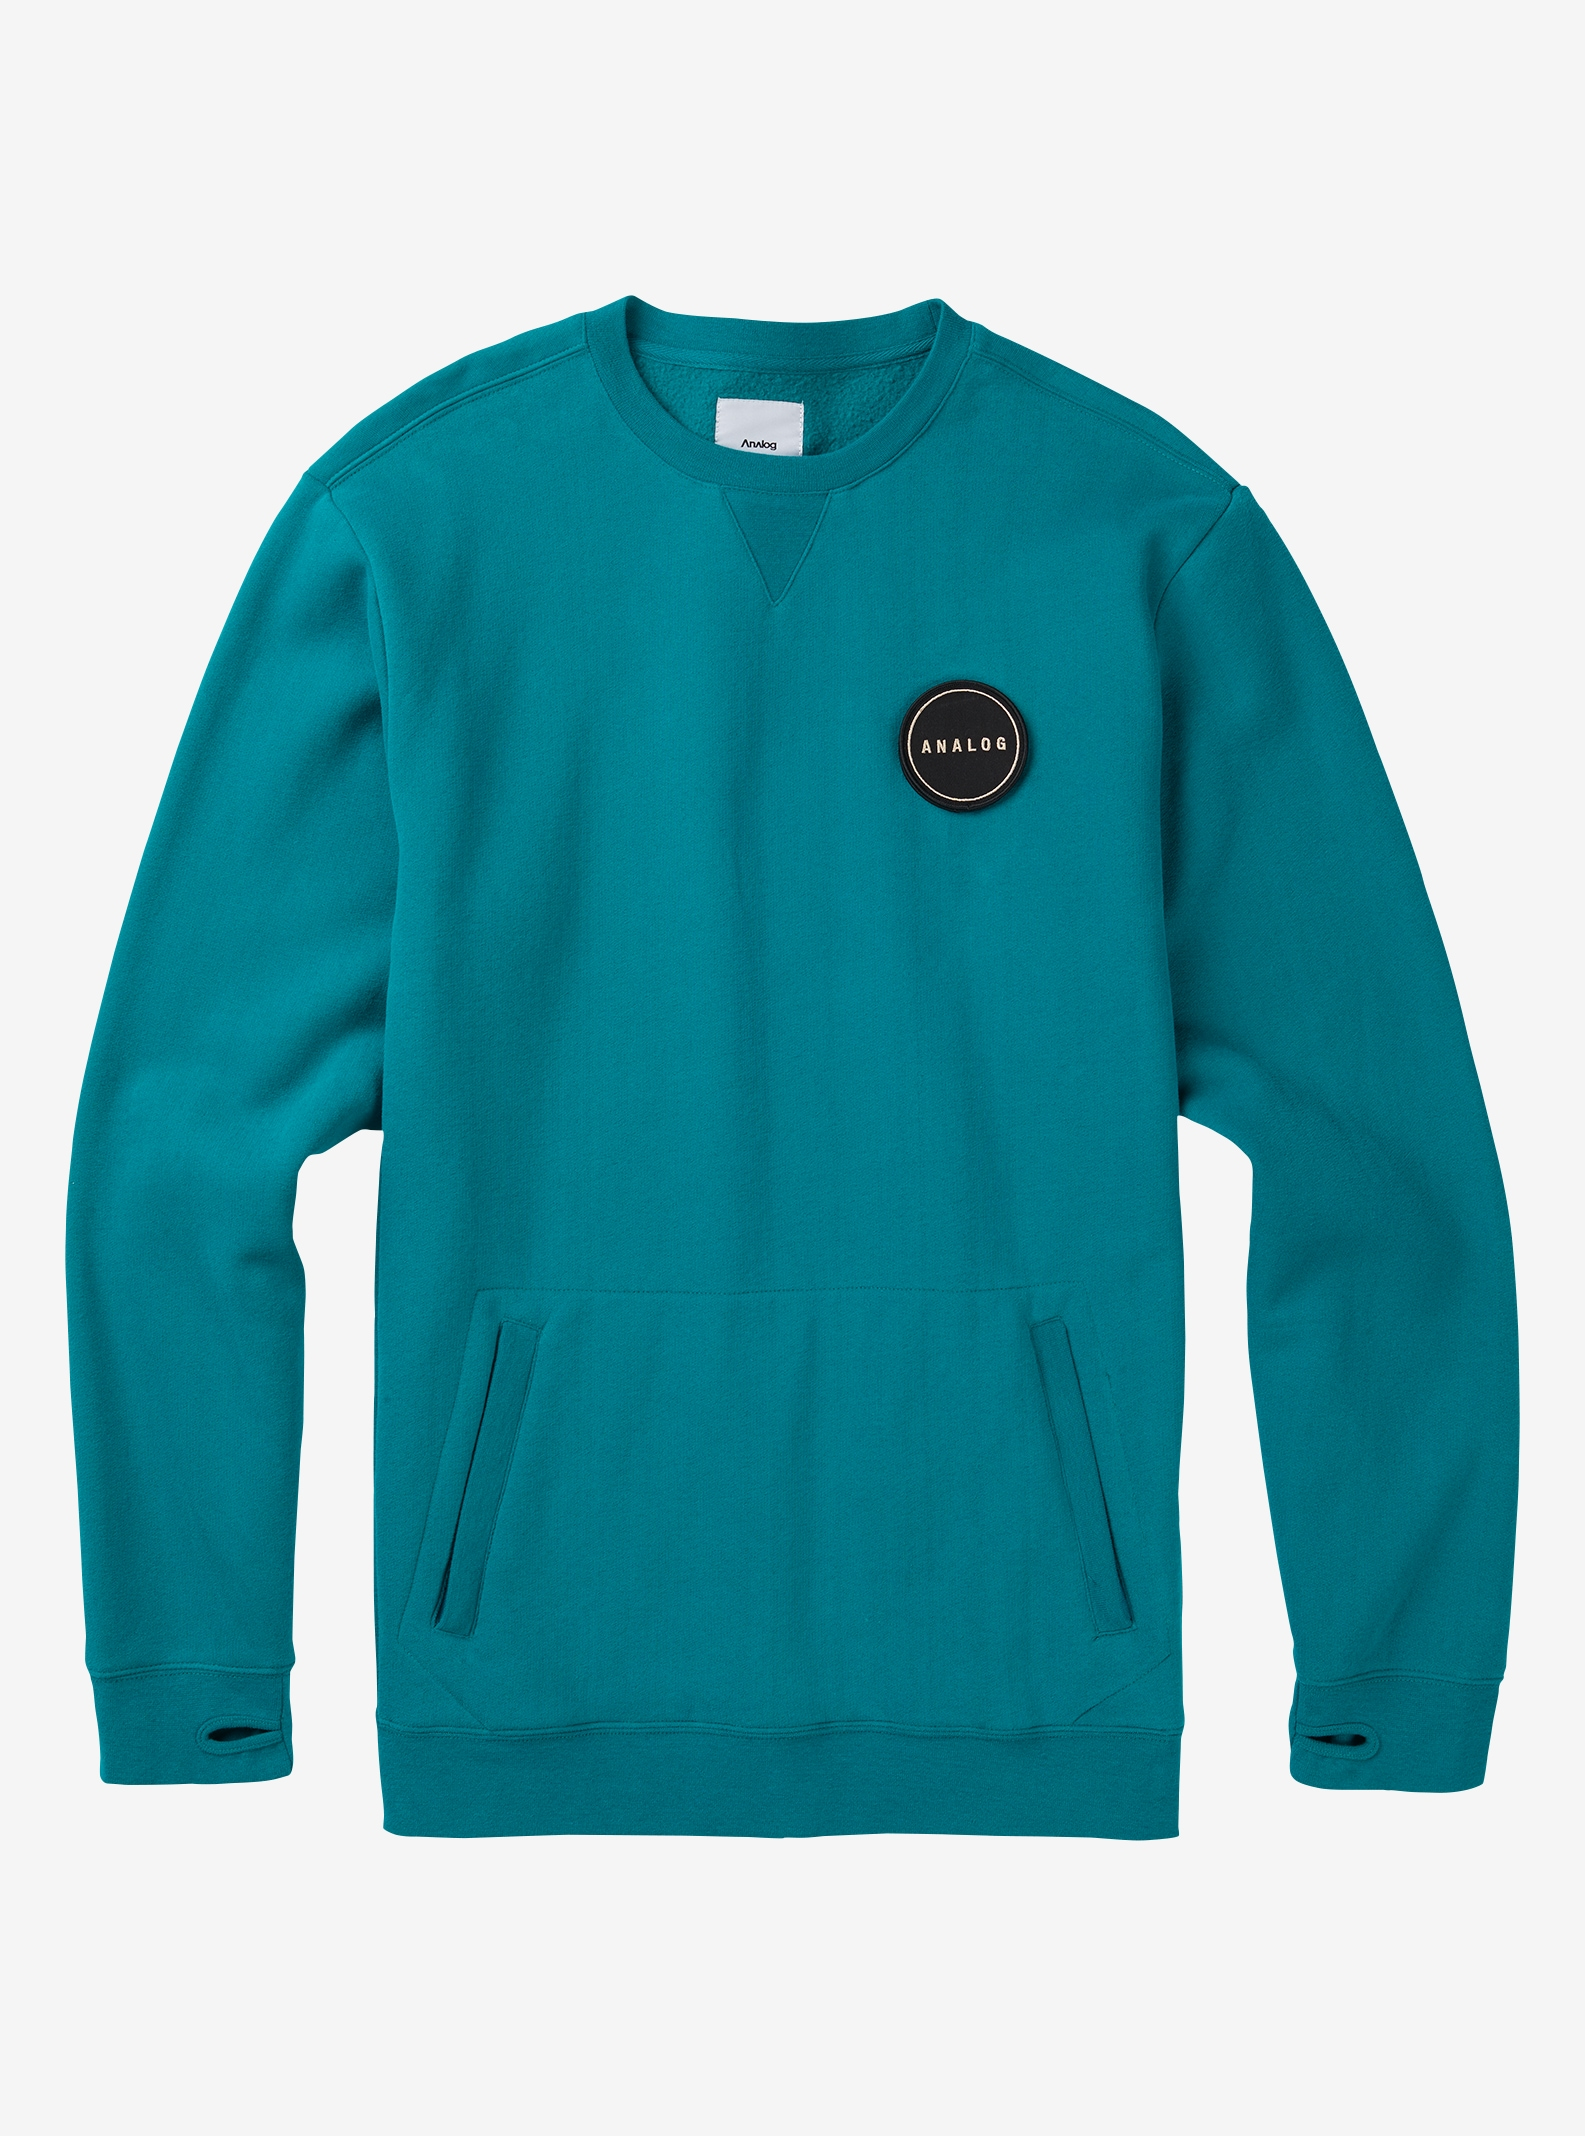 Men's Analog Enclave Crew shown in Blue 107